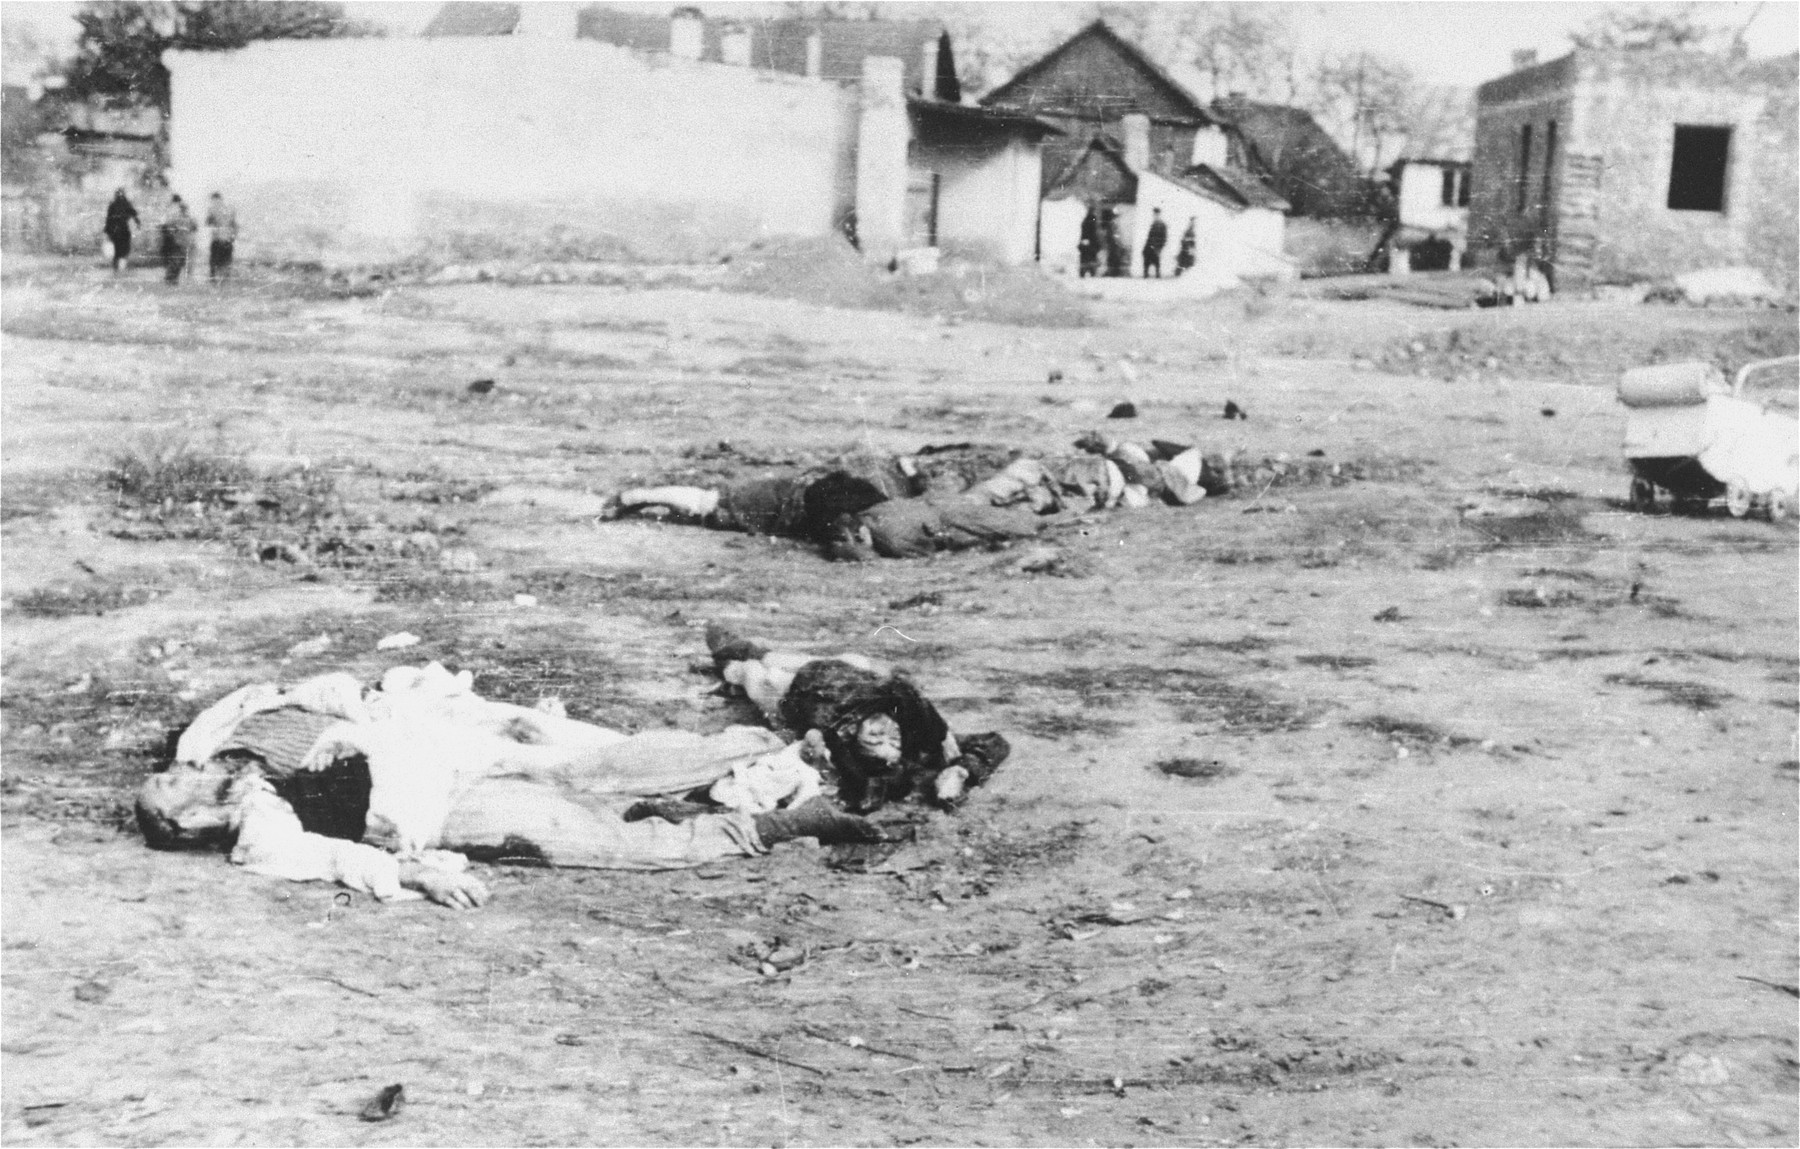 The corpses of Jews lie on the ground in the Deblin-Irena ghetto.  The corpses of those who were murdered in the ghetto during the expulsion Aktion to Sobibor were transported by cart to the Jewish cemetery in Bobrowniki.  [Source: Yad Vashem research notes.]